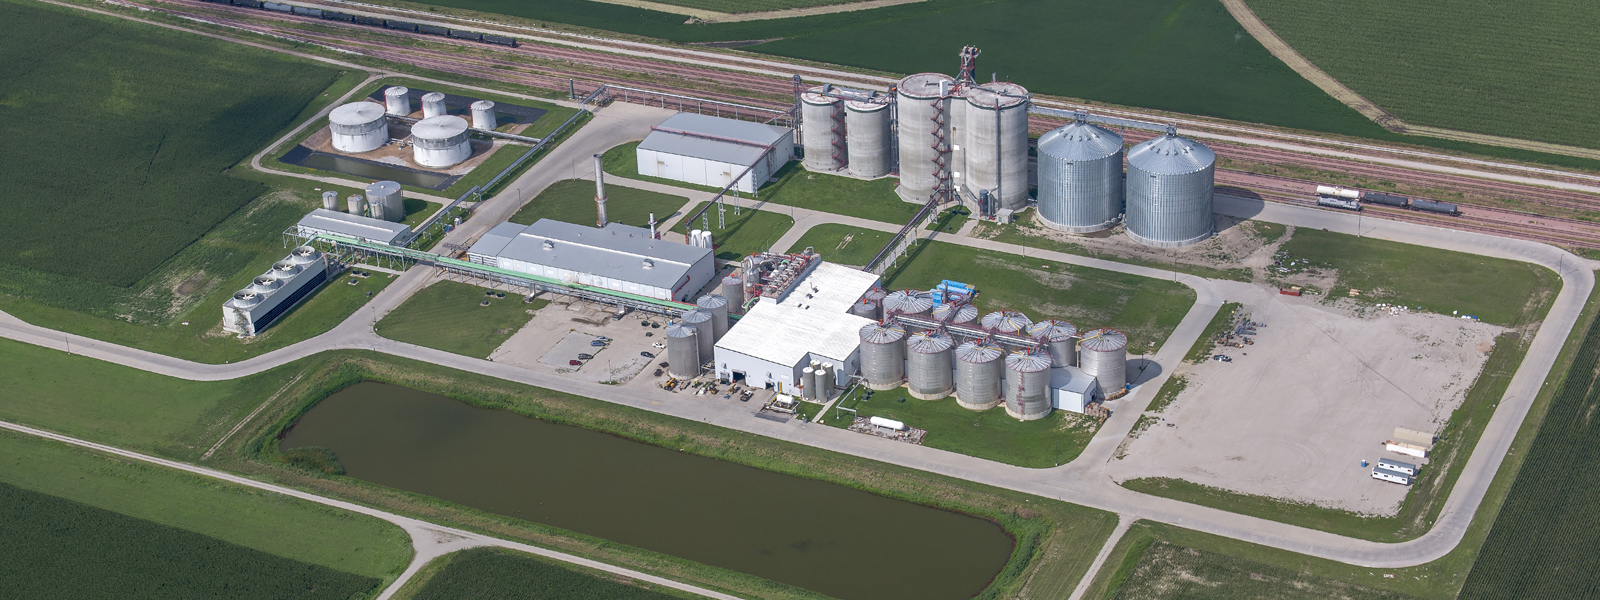 Flint Hills Resources to Make Major Investment at Fairmont Ethanol Plant